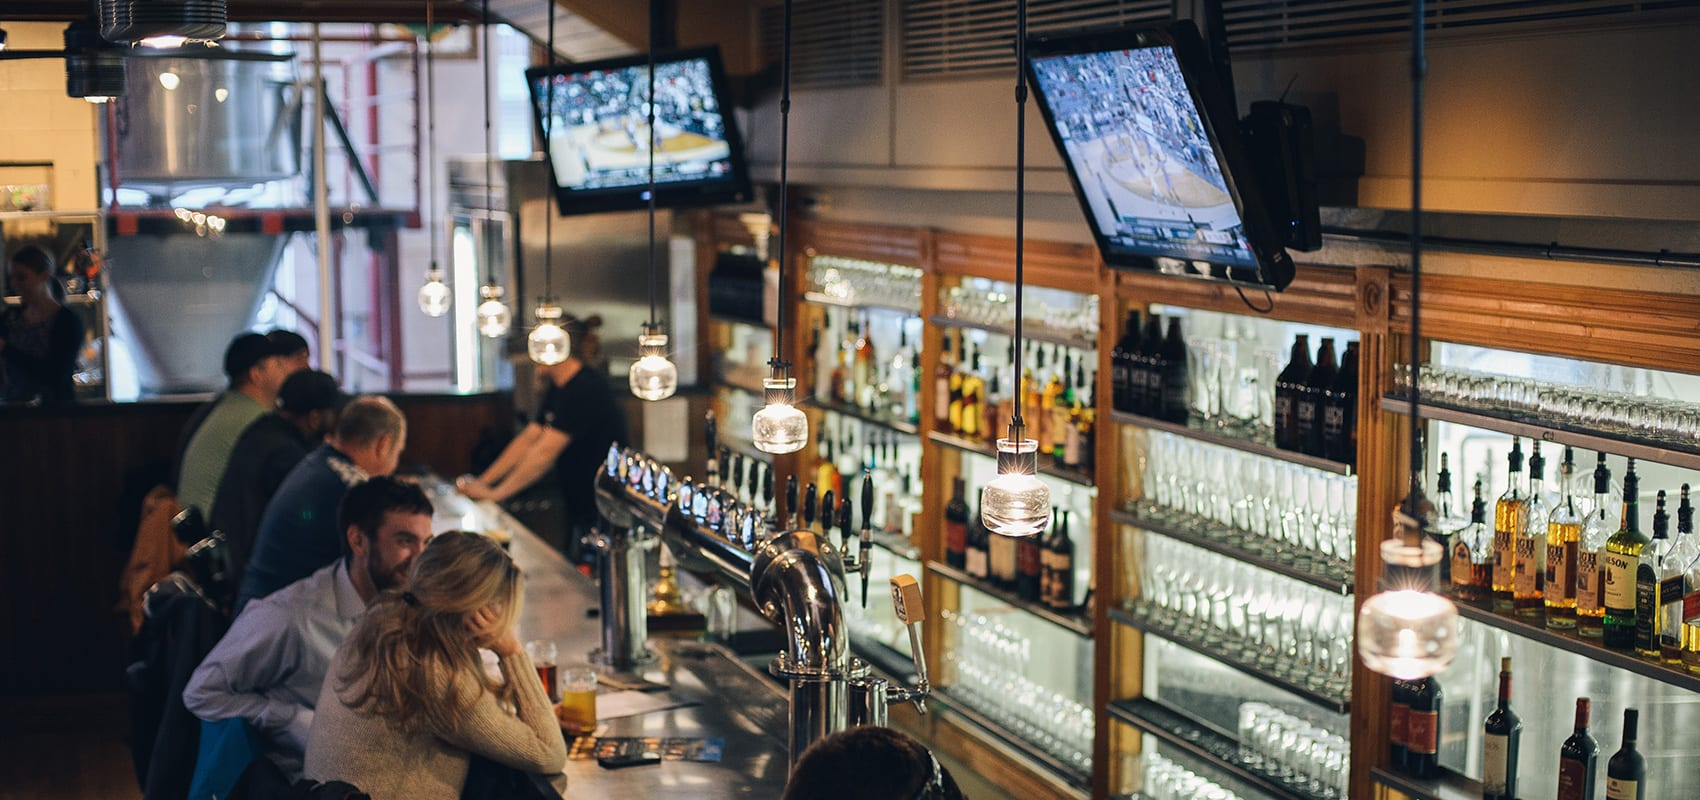 Top Places to Watch the 2020 March Madness Basketball Tournament in Park City Image